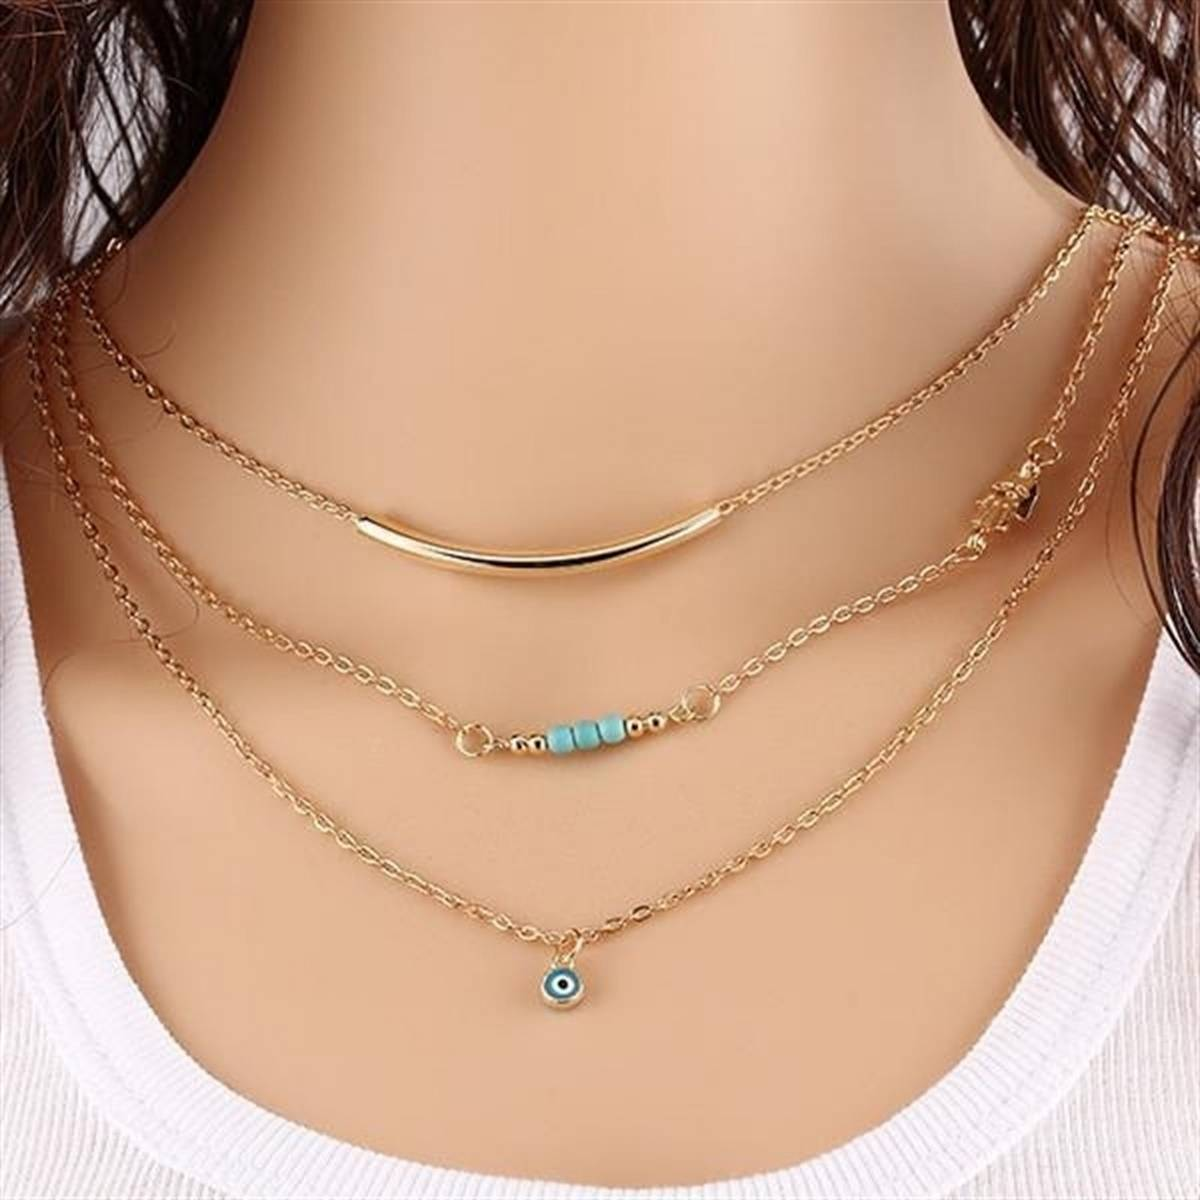 Vintage Korean Women's Fashion Necklace Stack Chain 3 Layers Jewelry